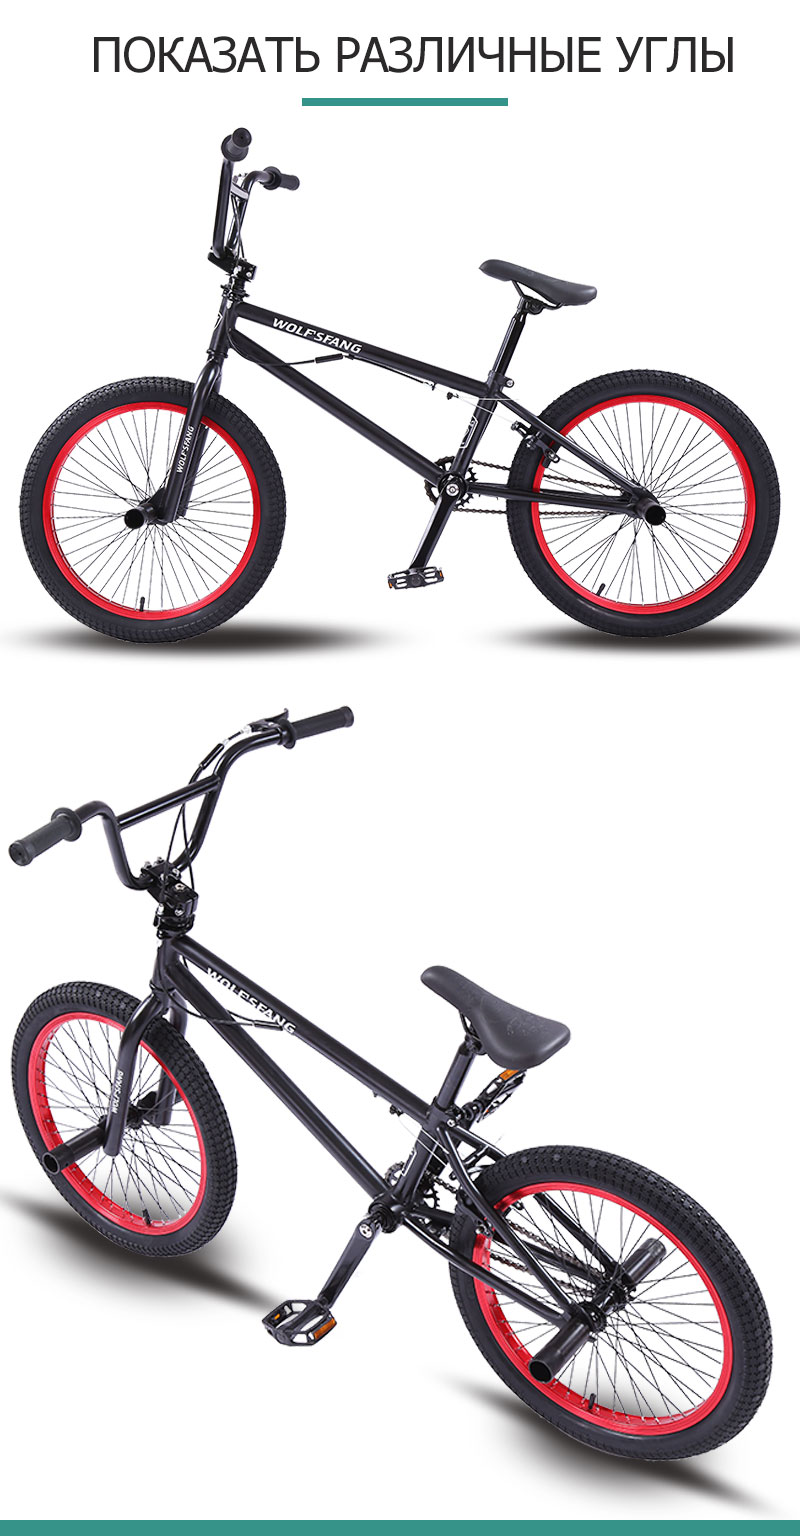 H08d7596b2879429989e6ea4f391f48375 wolf's fang 20Inch BMX steel frame Performance Bike purple/red tire bike for show Stunt Acrobatic Bike rear Fancy street bicycle